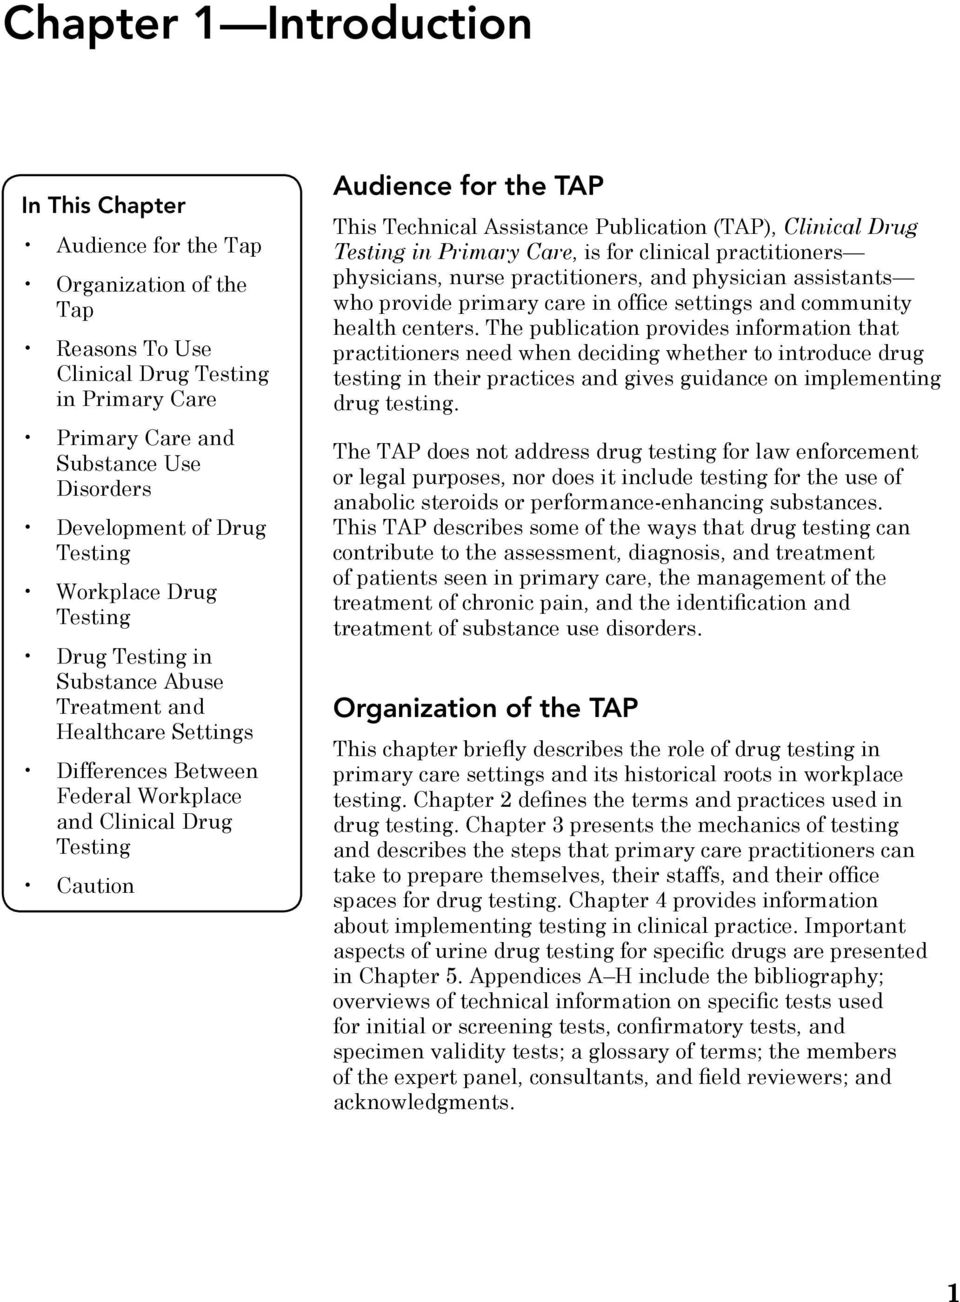 Technical Assistance Publication (TAP), Clinical Drug Testing in Primary Care, is for clinical practitioners physicians, nurse practitioners, and physician assistants who provide primary care in